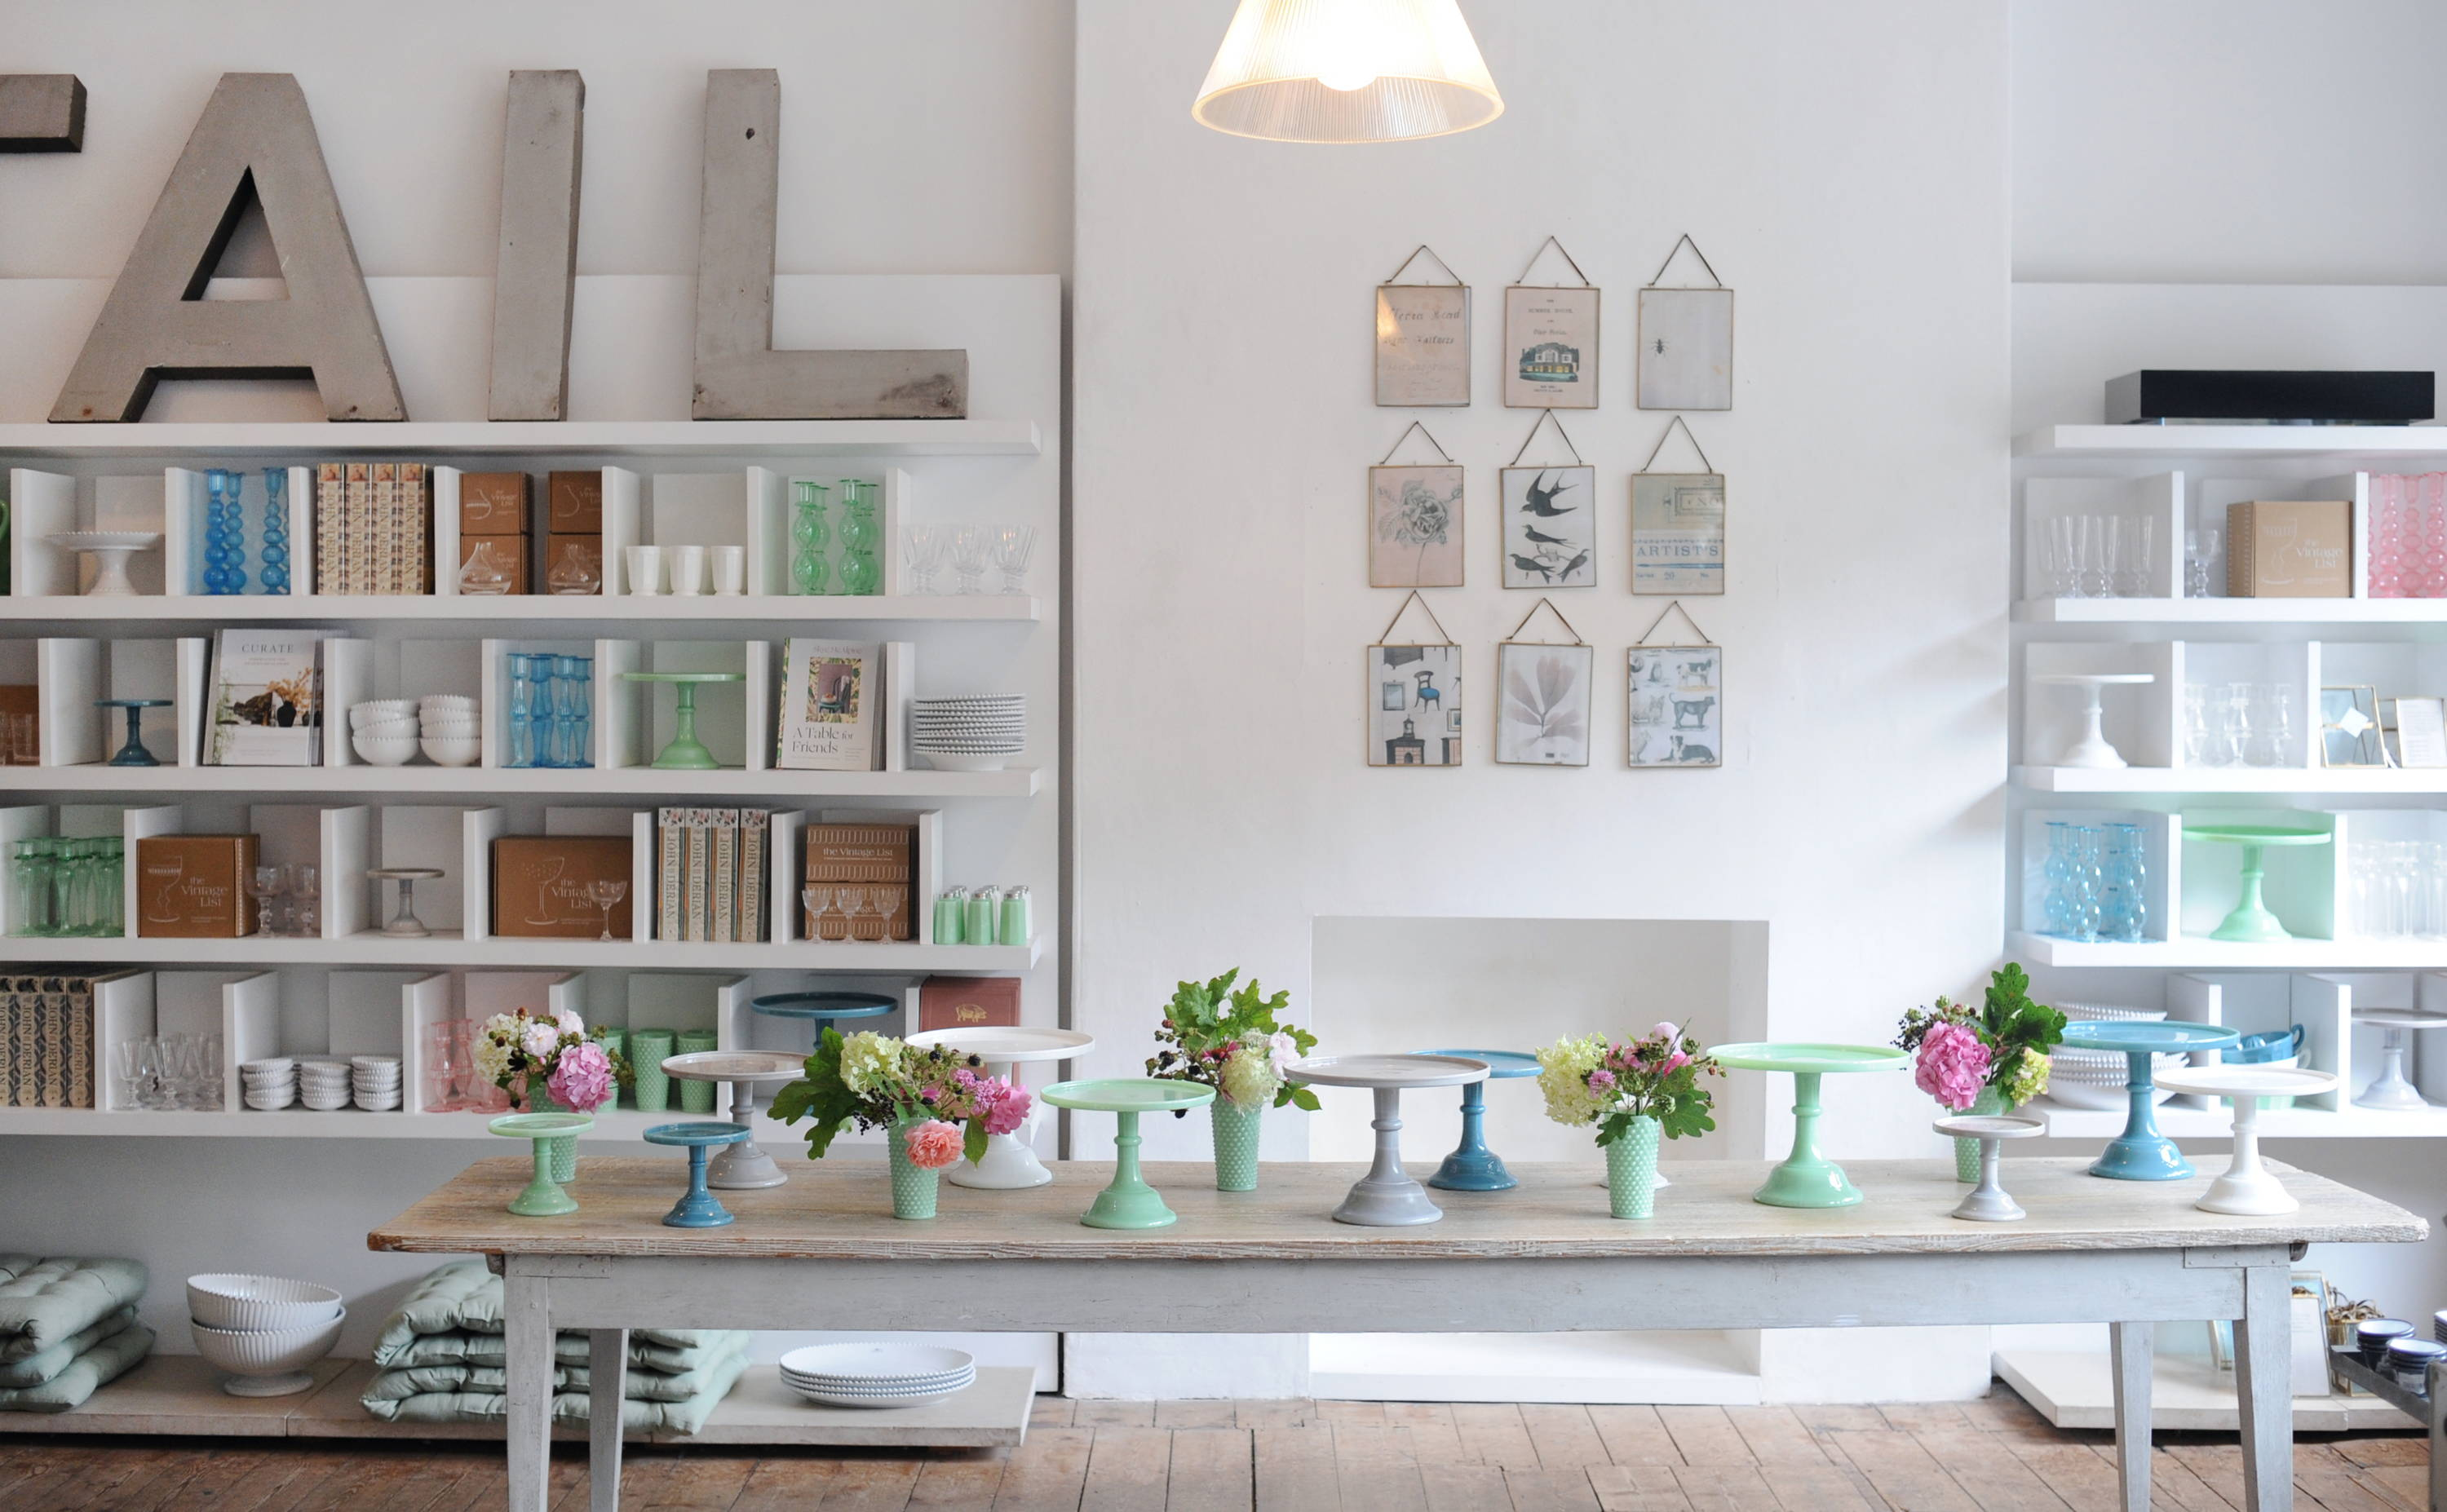 Landscape image of the Homewares department with Mosser on the main table.